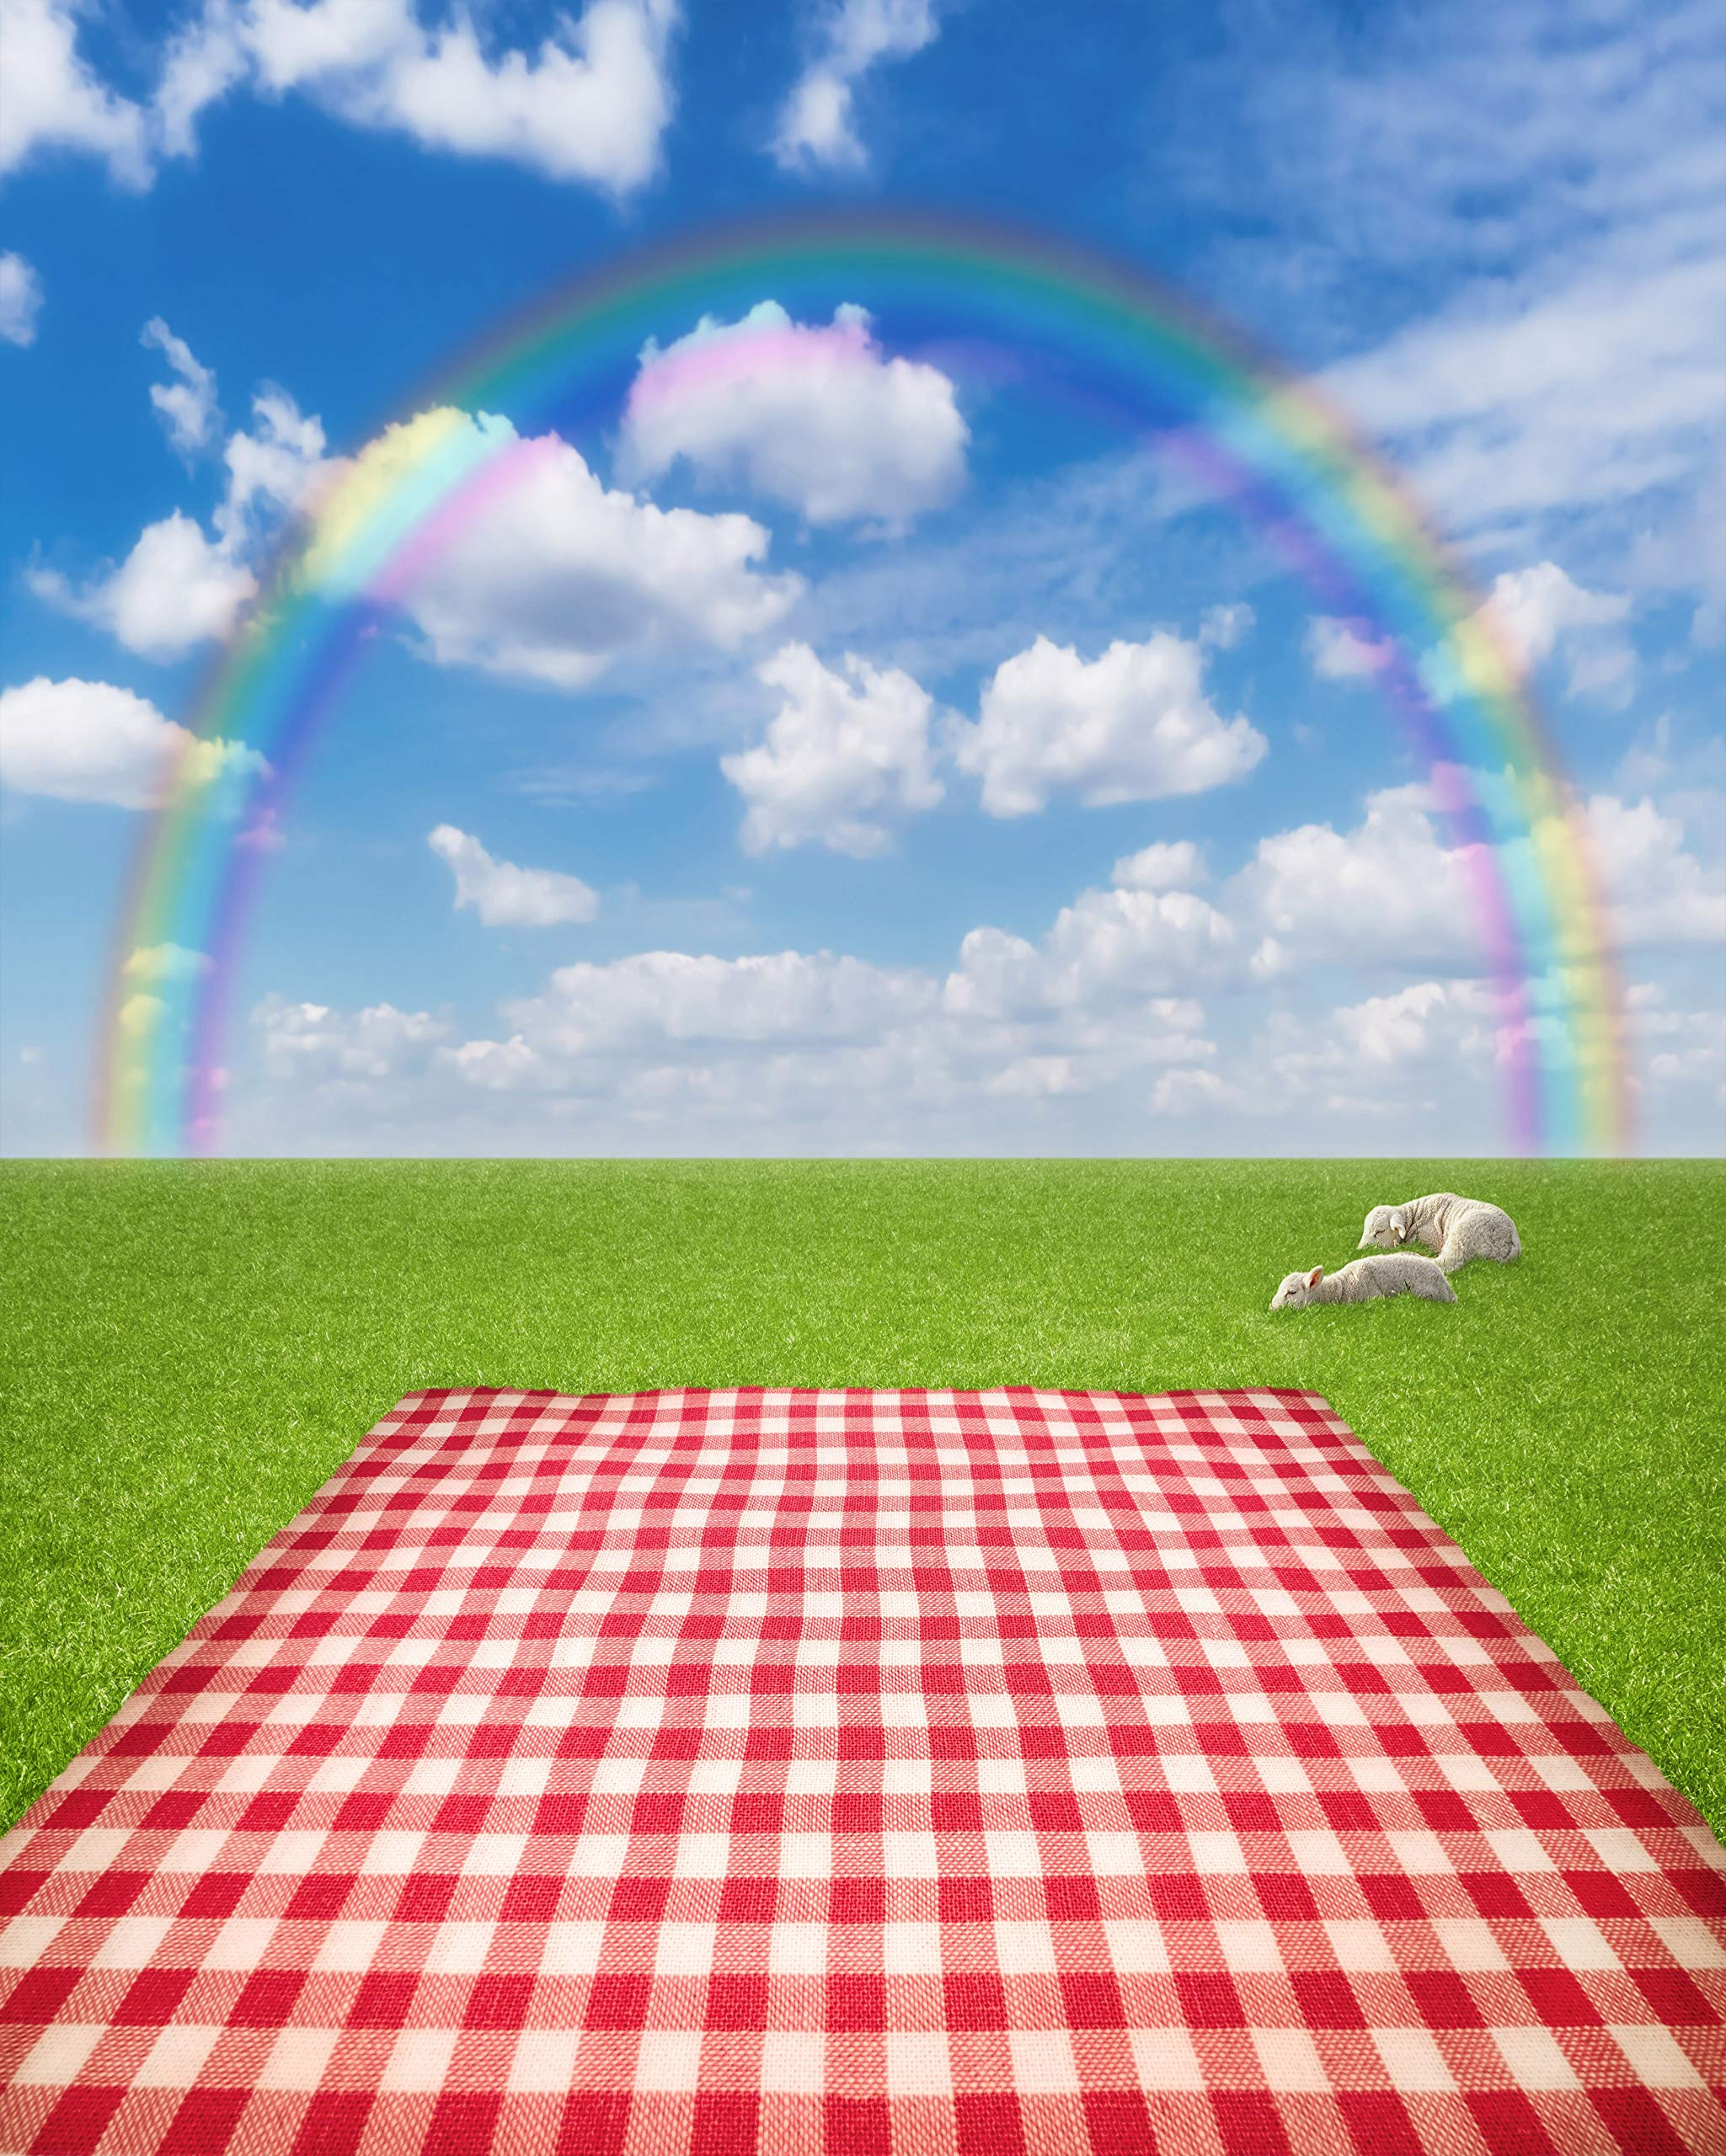 Rainbow Sky Backdrop Blue Sunny Sky red Grid Blanket Green Grass Ground Lawn with Sleeping Sheeps Spring Scene Scenic Printed Fabric Photography Background (G1426, 8' Wide by 10' Tall)